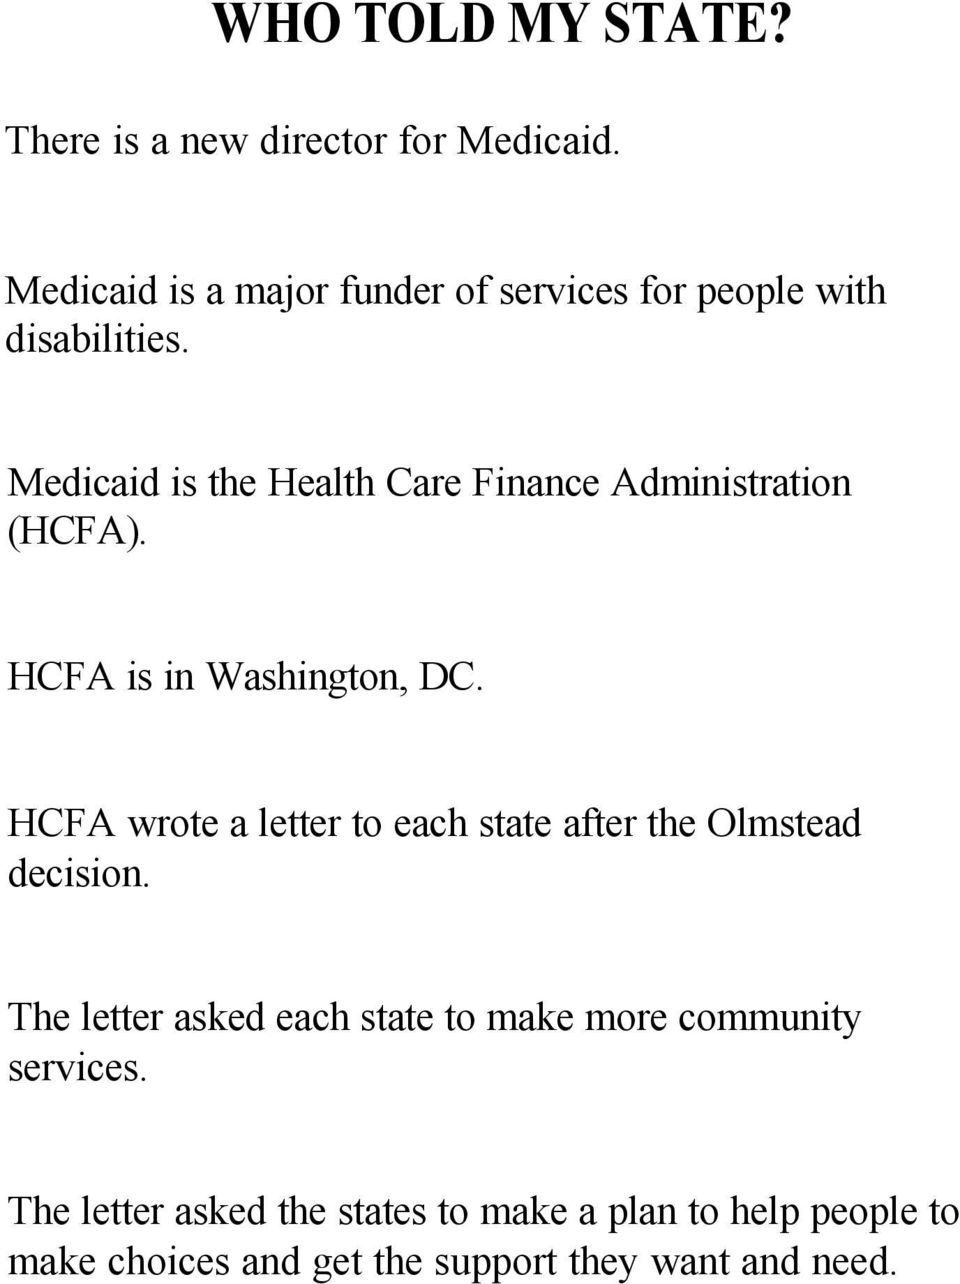 Medicaid is the Health Care Finance Administration (HCFA). HCFA is in Washington, DC.